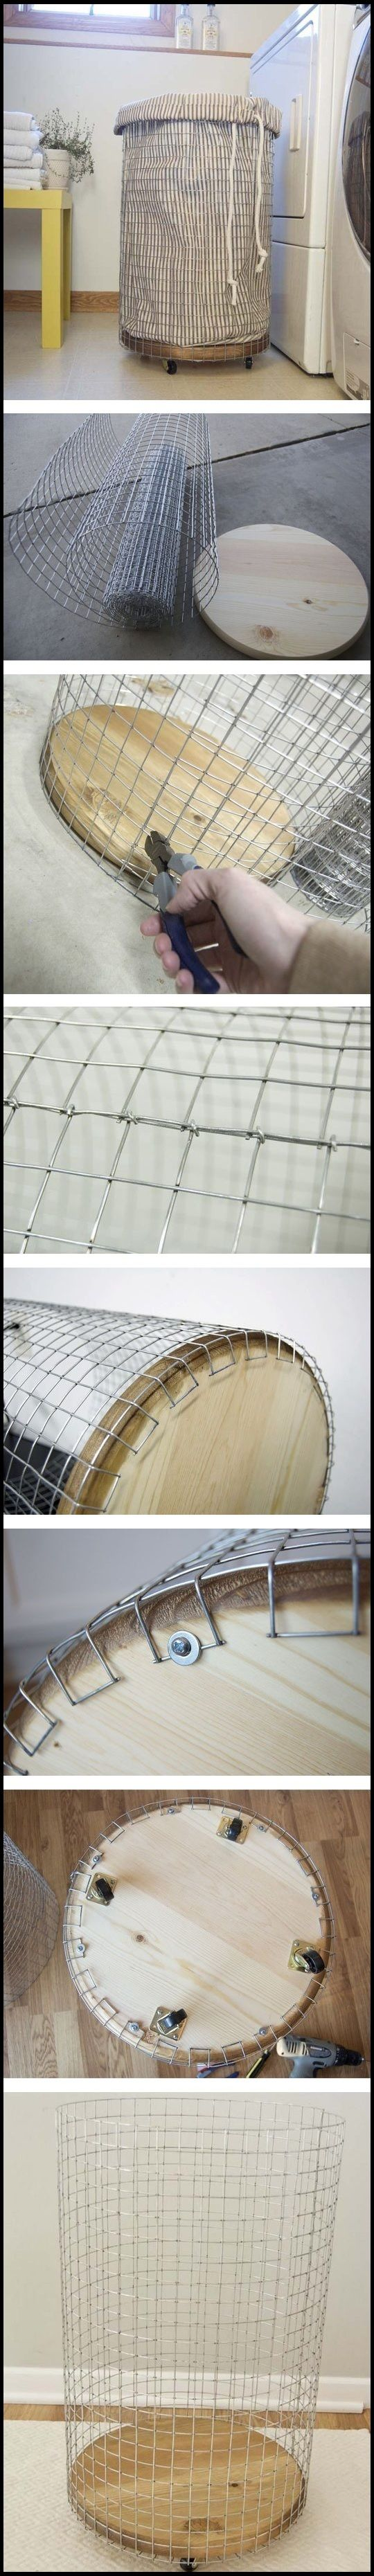 Great Trash Can for the #CraftRoom ----- How To Make a French Vintage Inspired Wire Hamper